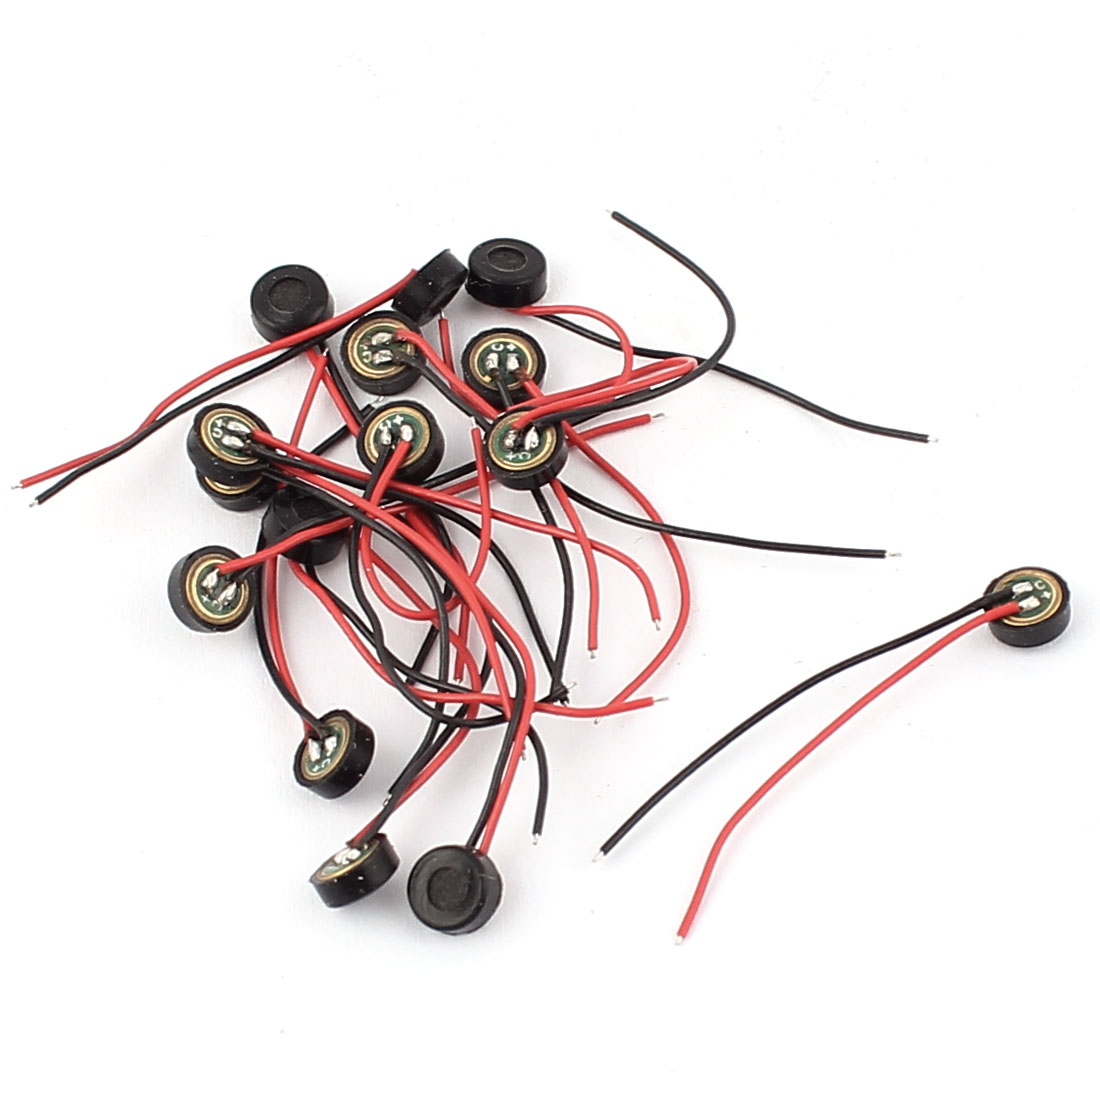 15 Pcs 4.5mm x 2mm Wire Cable MIC Capsule Electret Condenser Microphone by